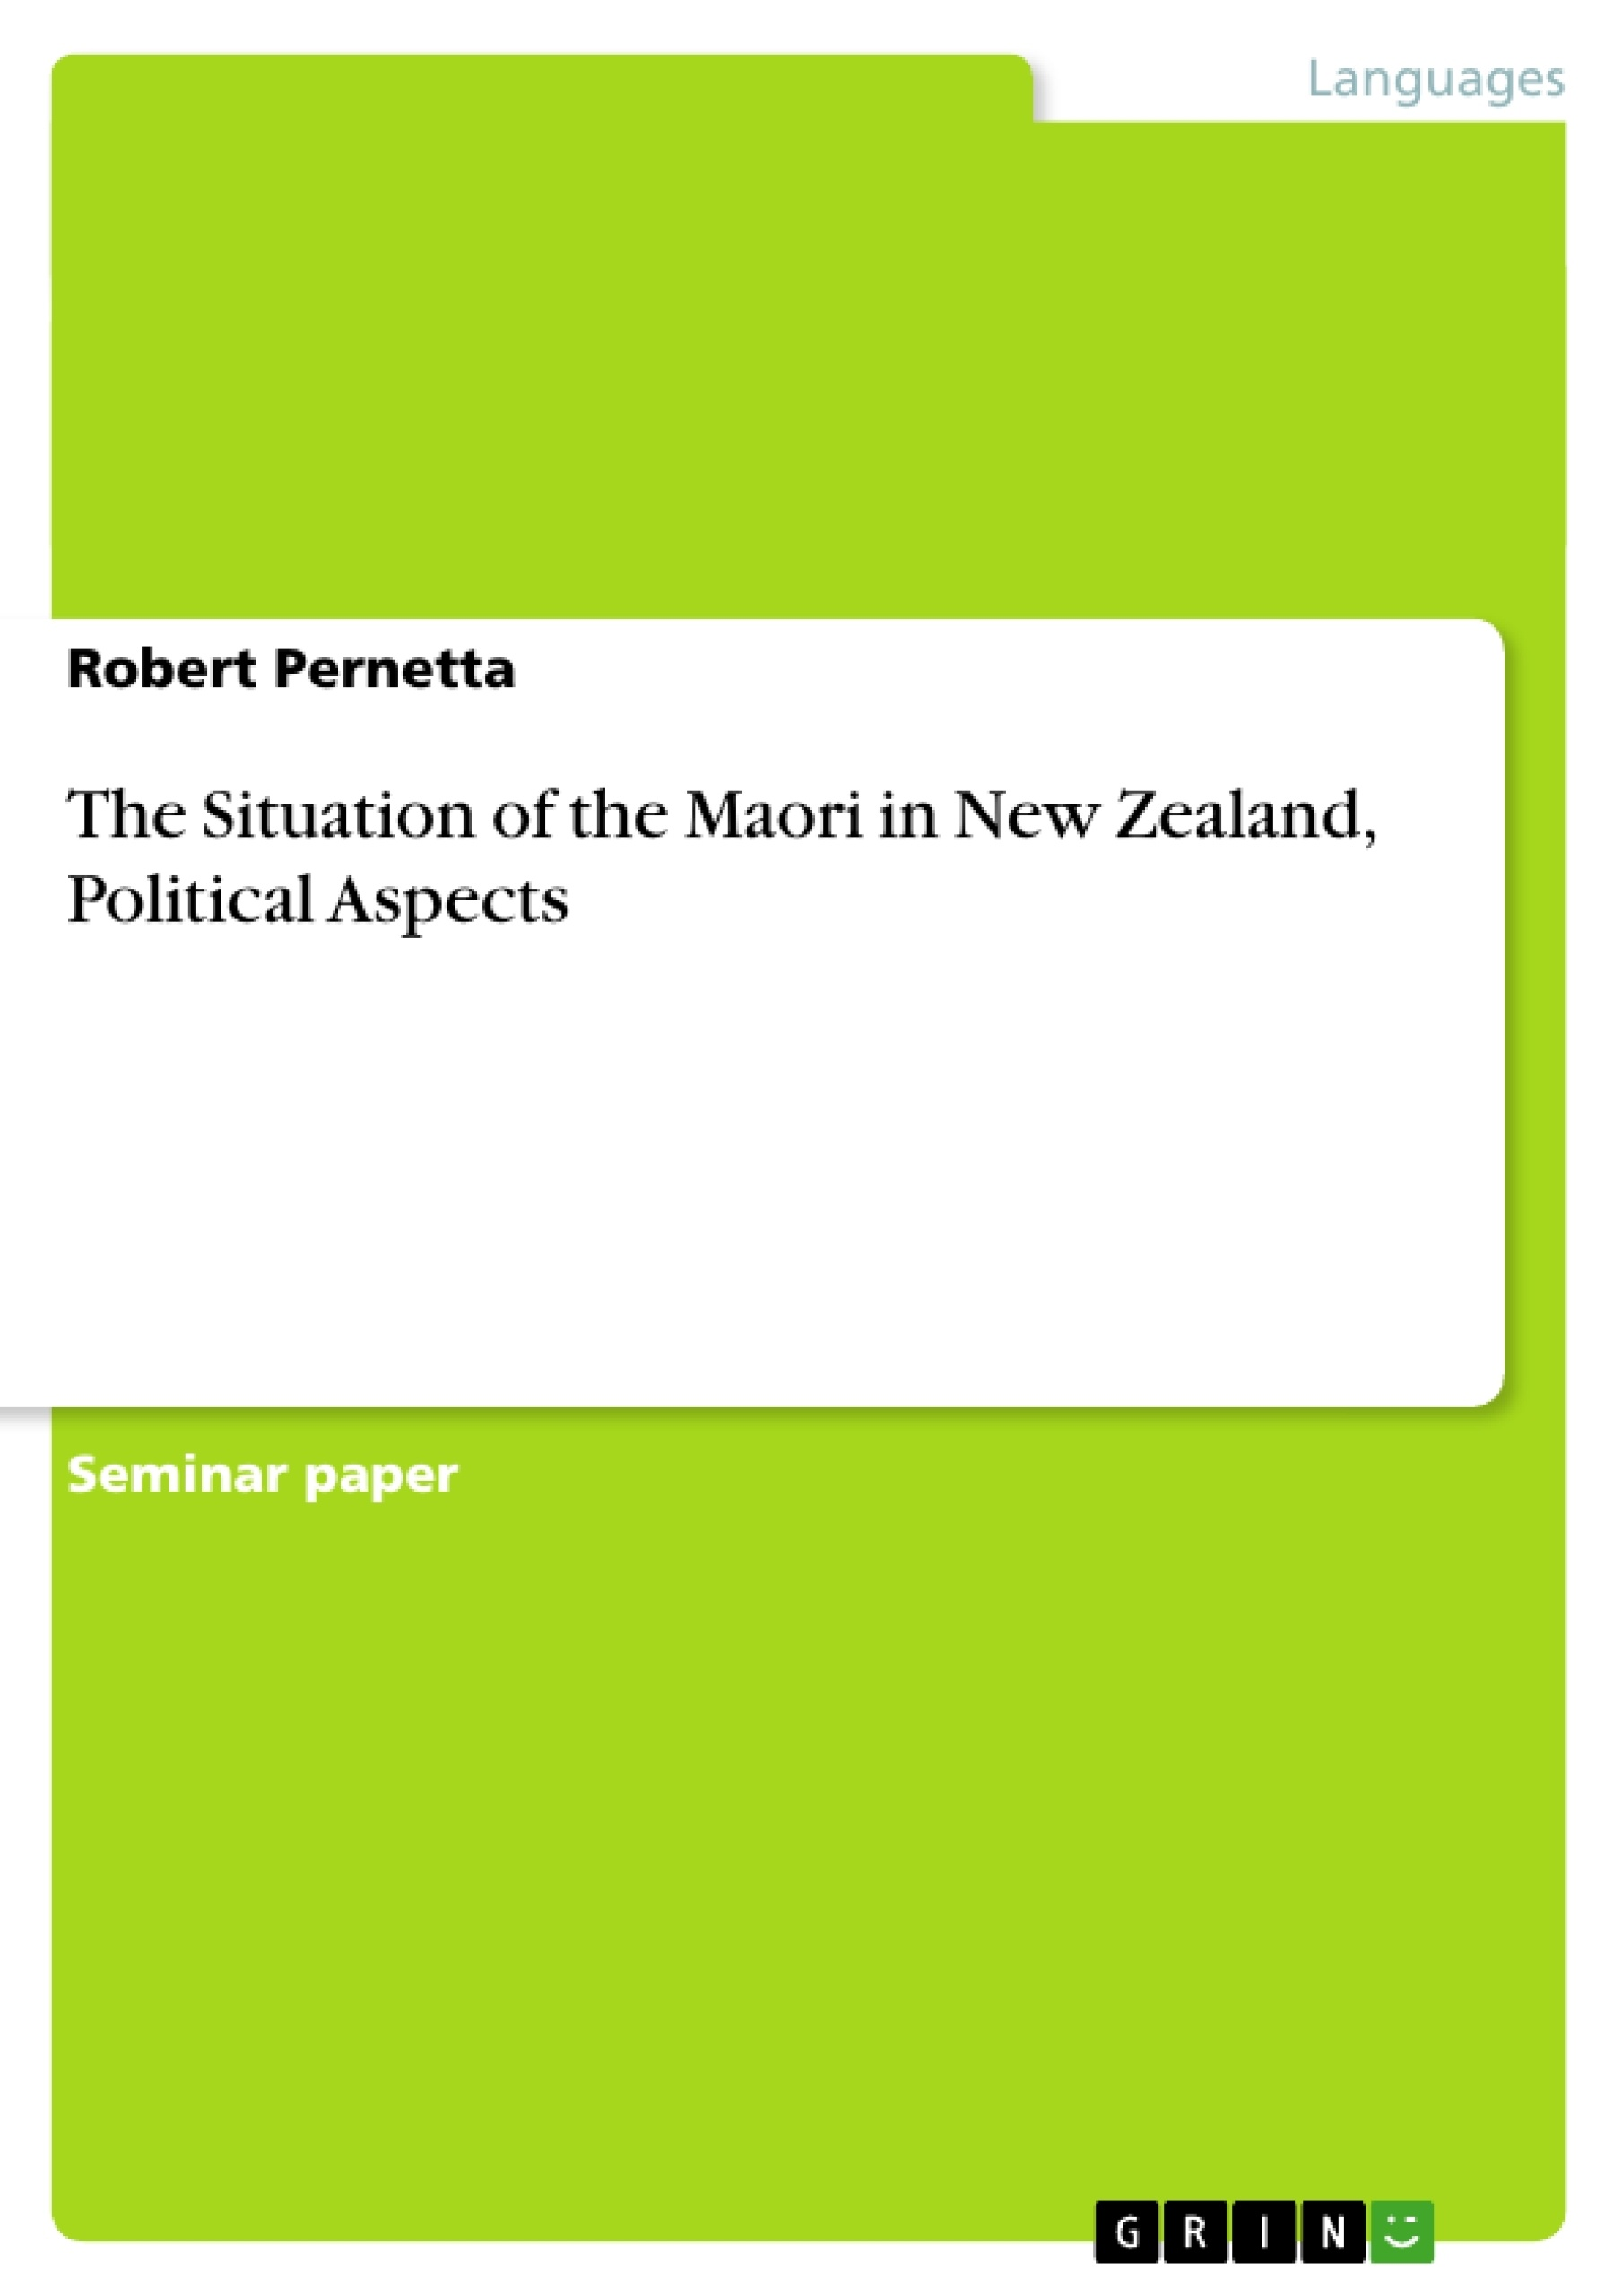 Title: The Situation of the Maori in New Zealand, Political Aspects